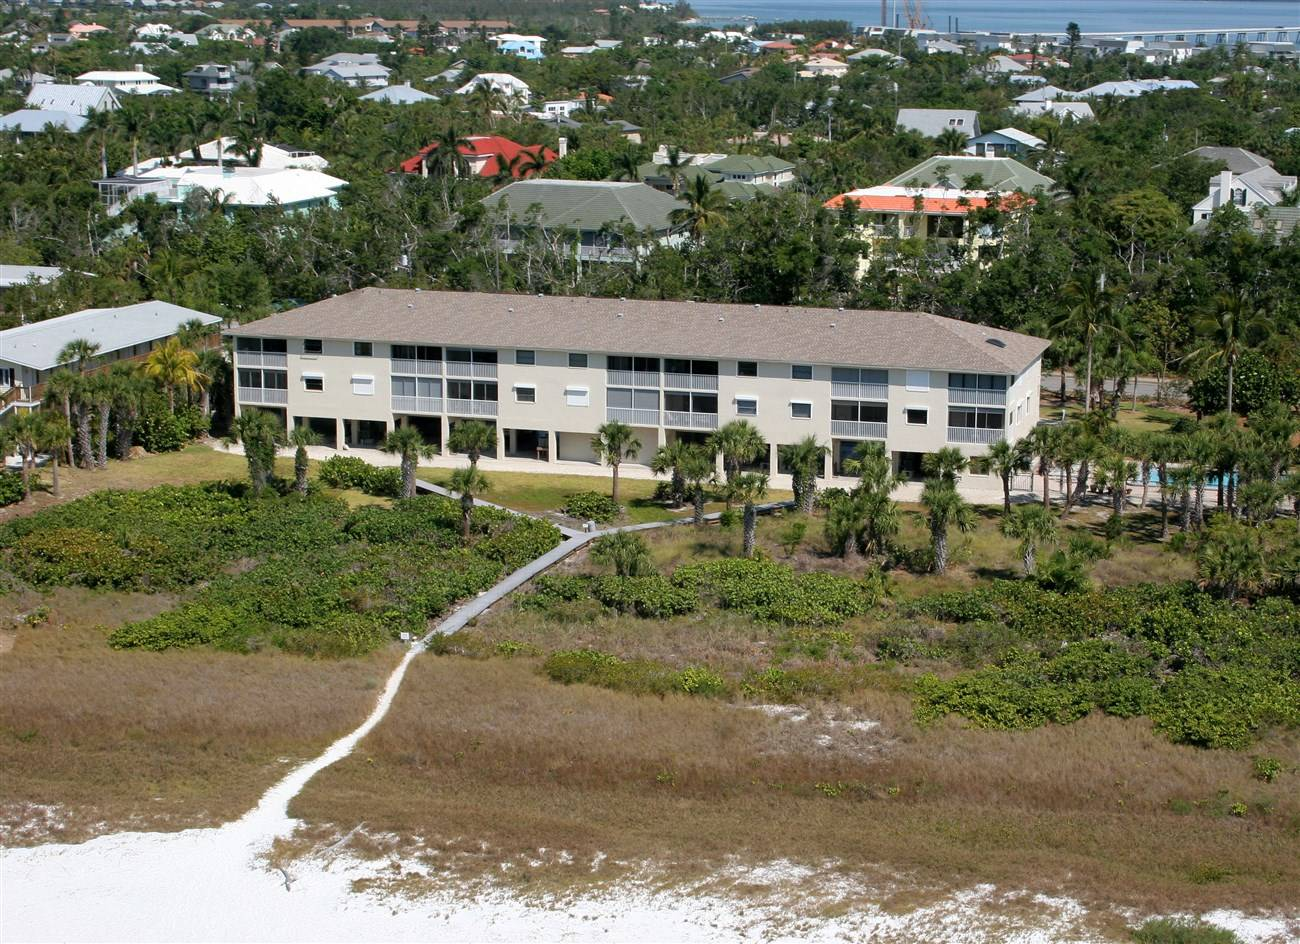 cottage sanibel condominium court condo island sandalfoot resurfacing rentals tennis